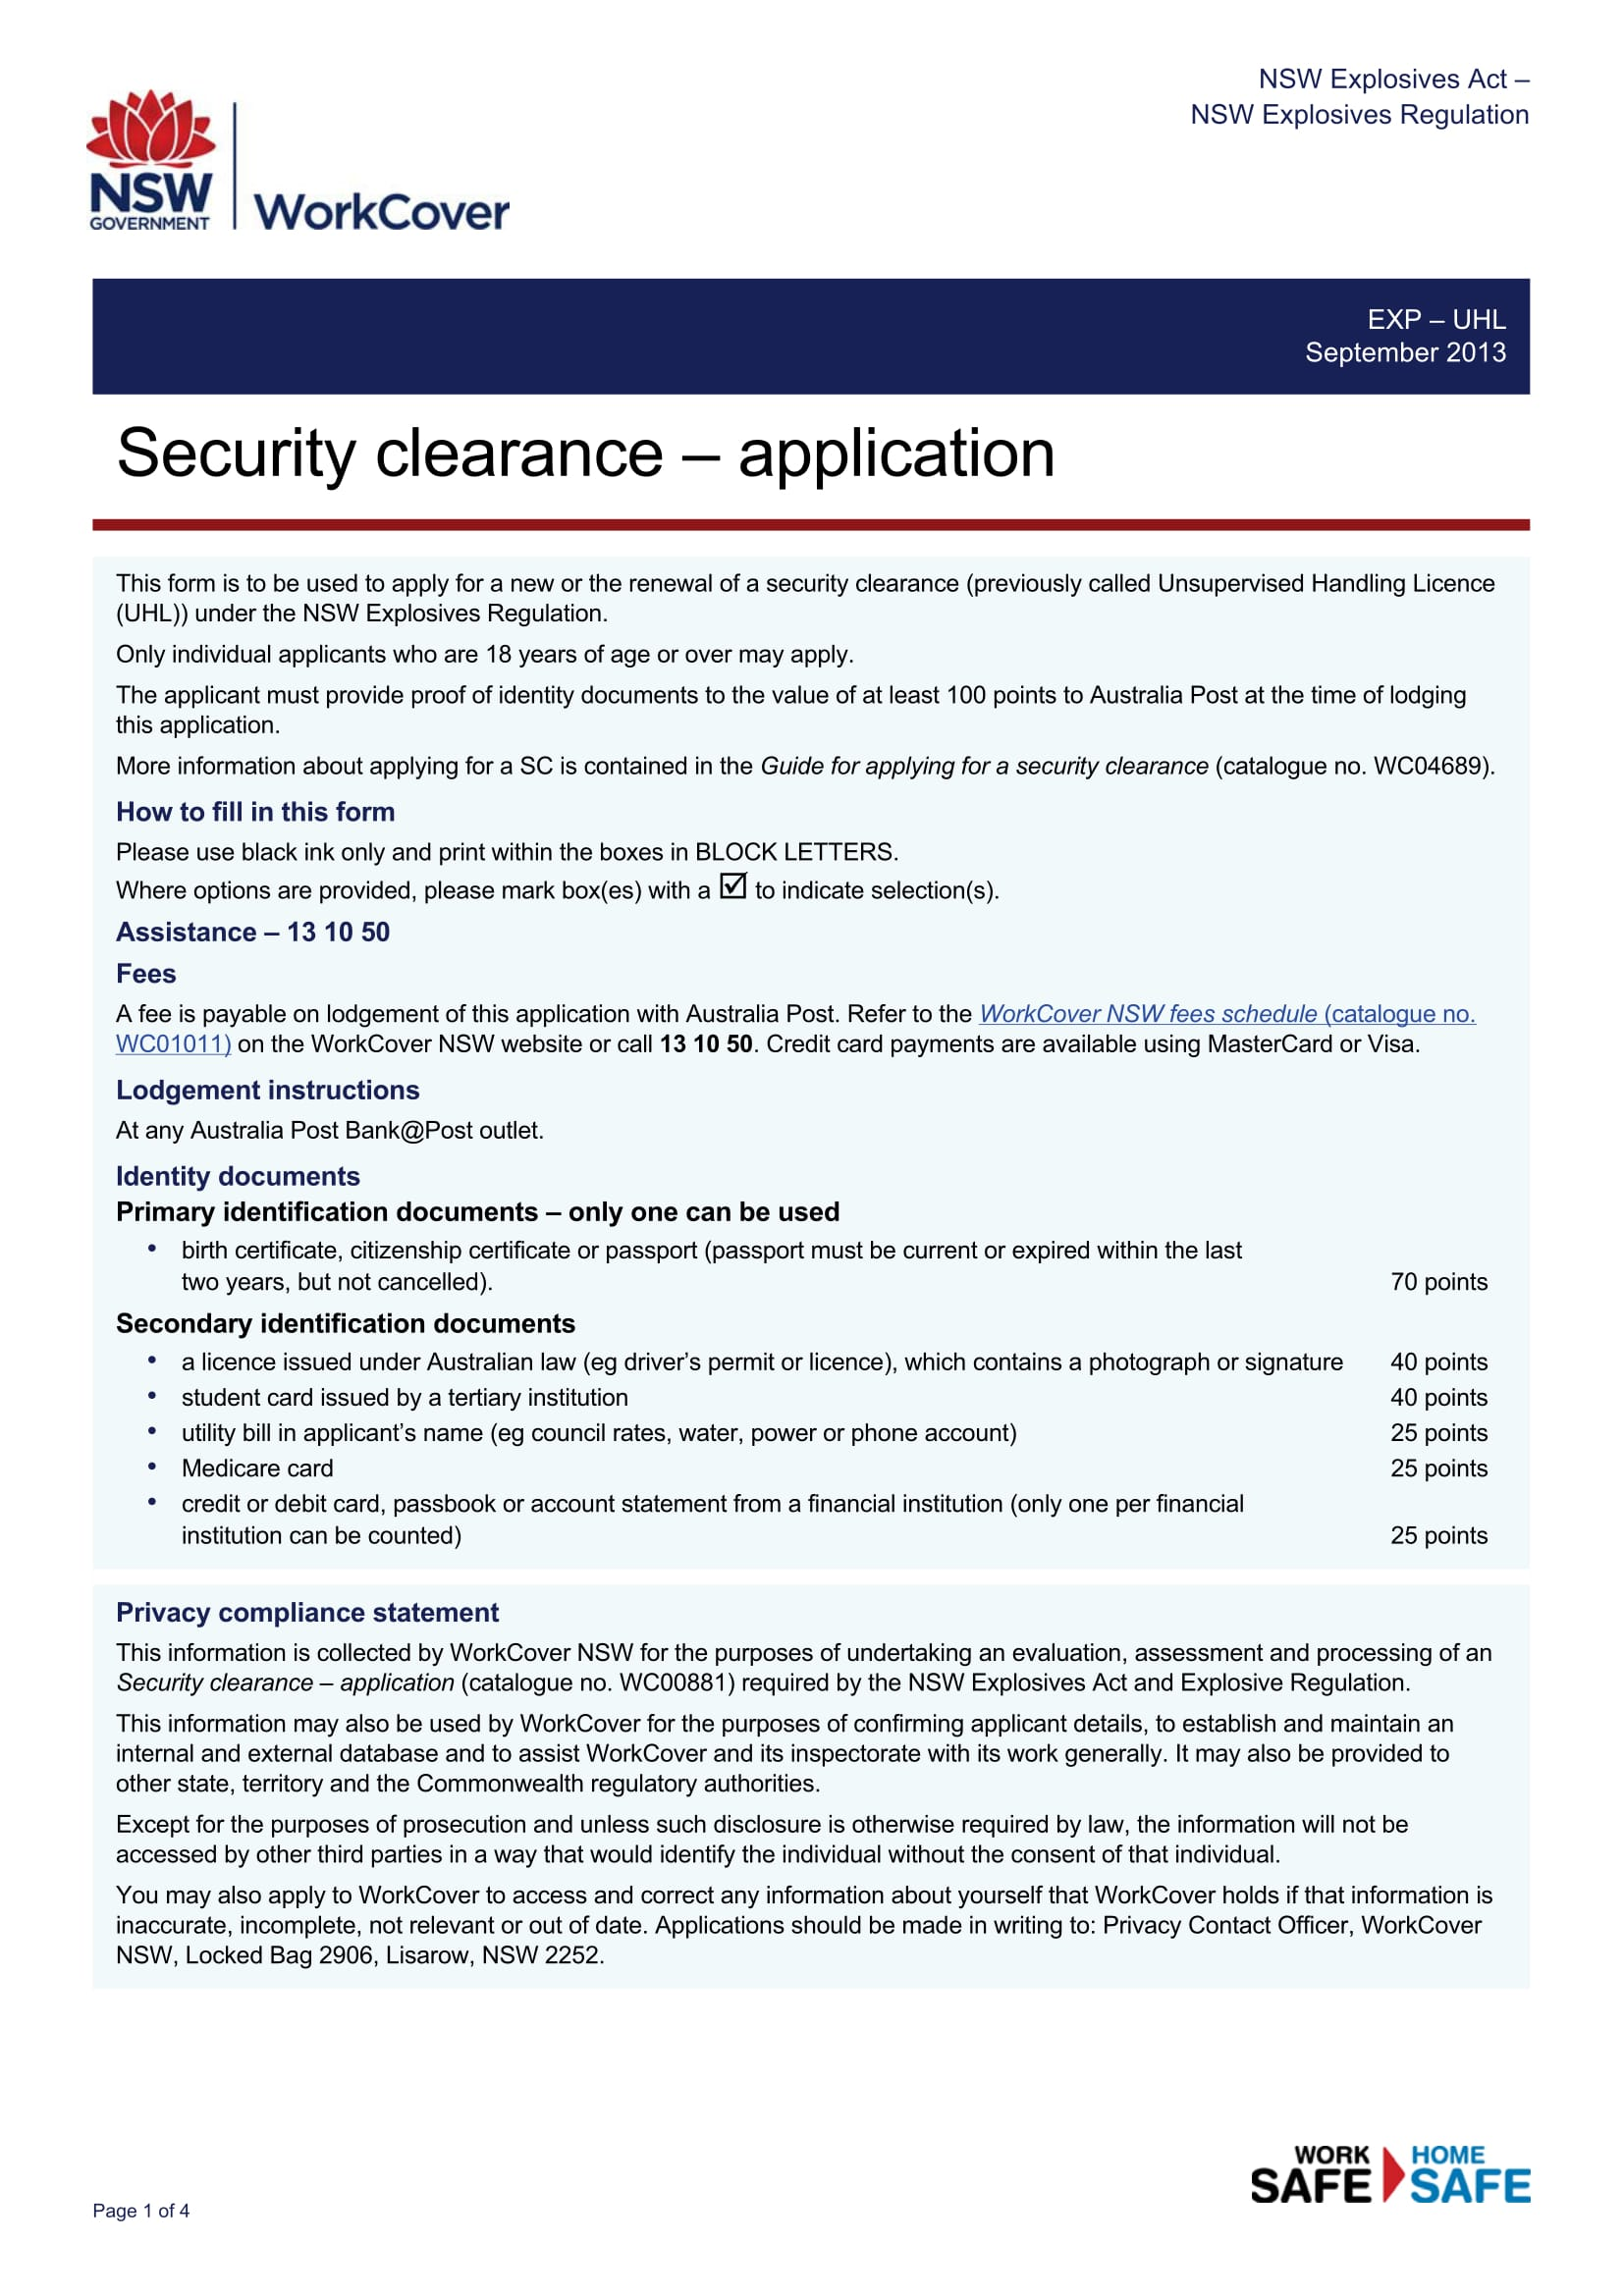 wc00881 0914 269035 security clearance application form licence static 1